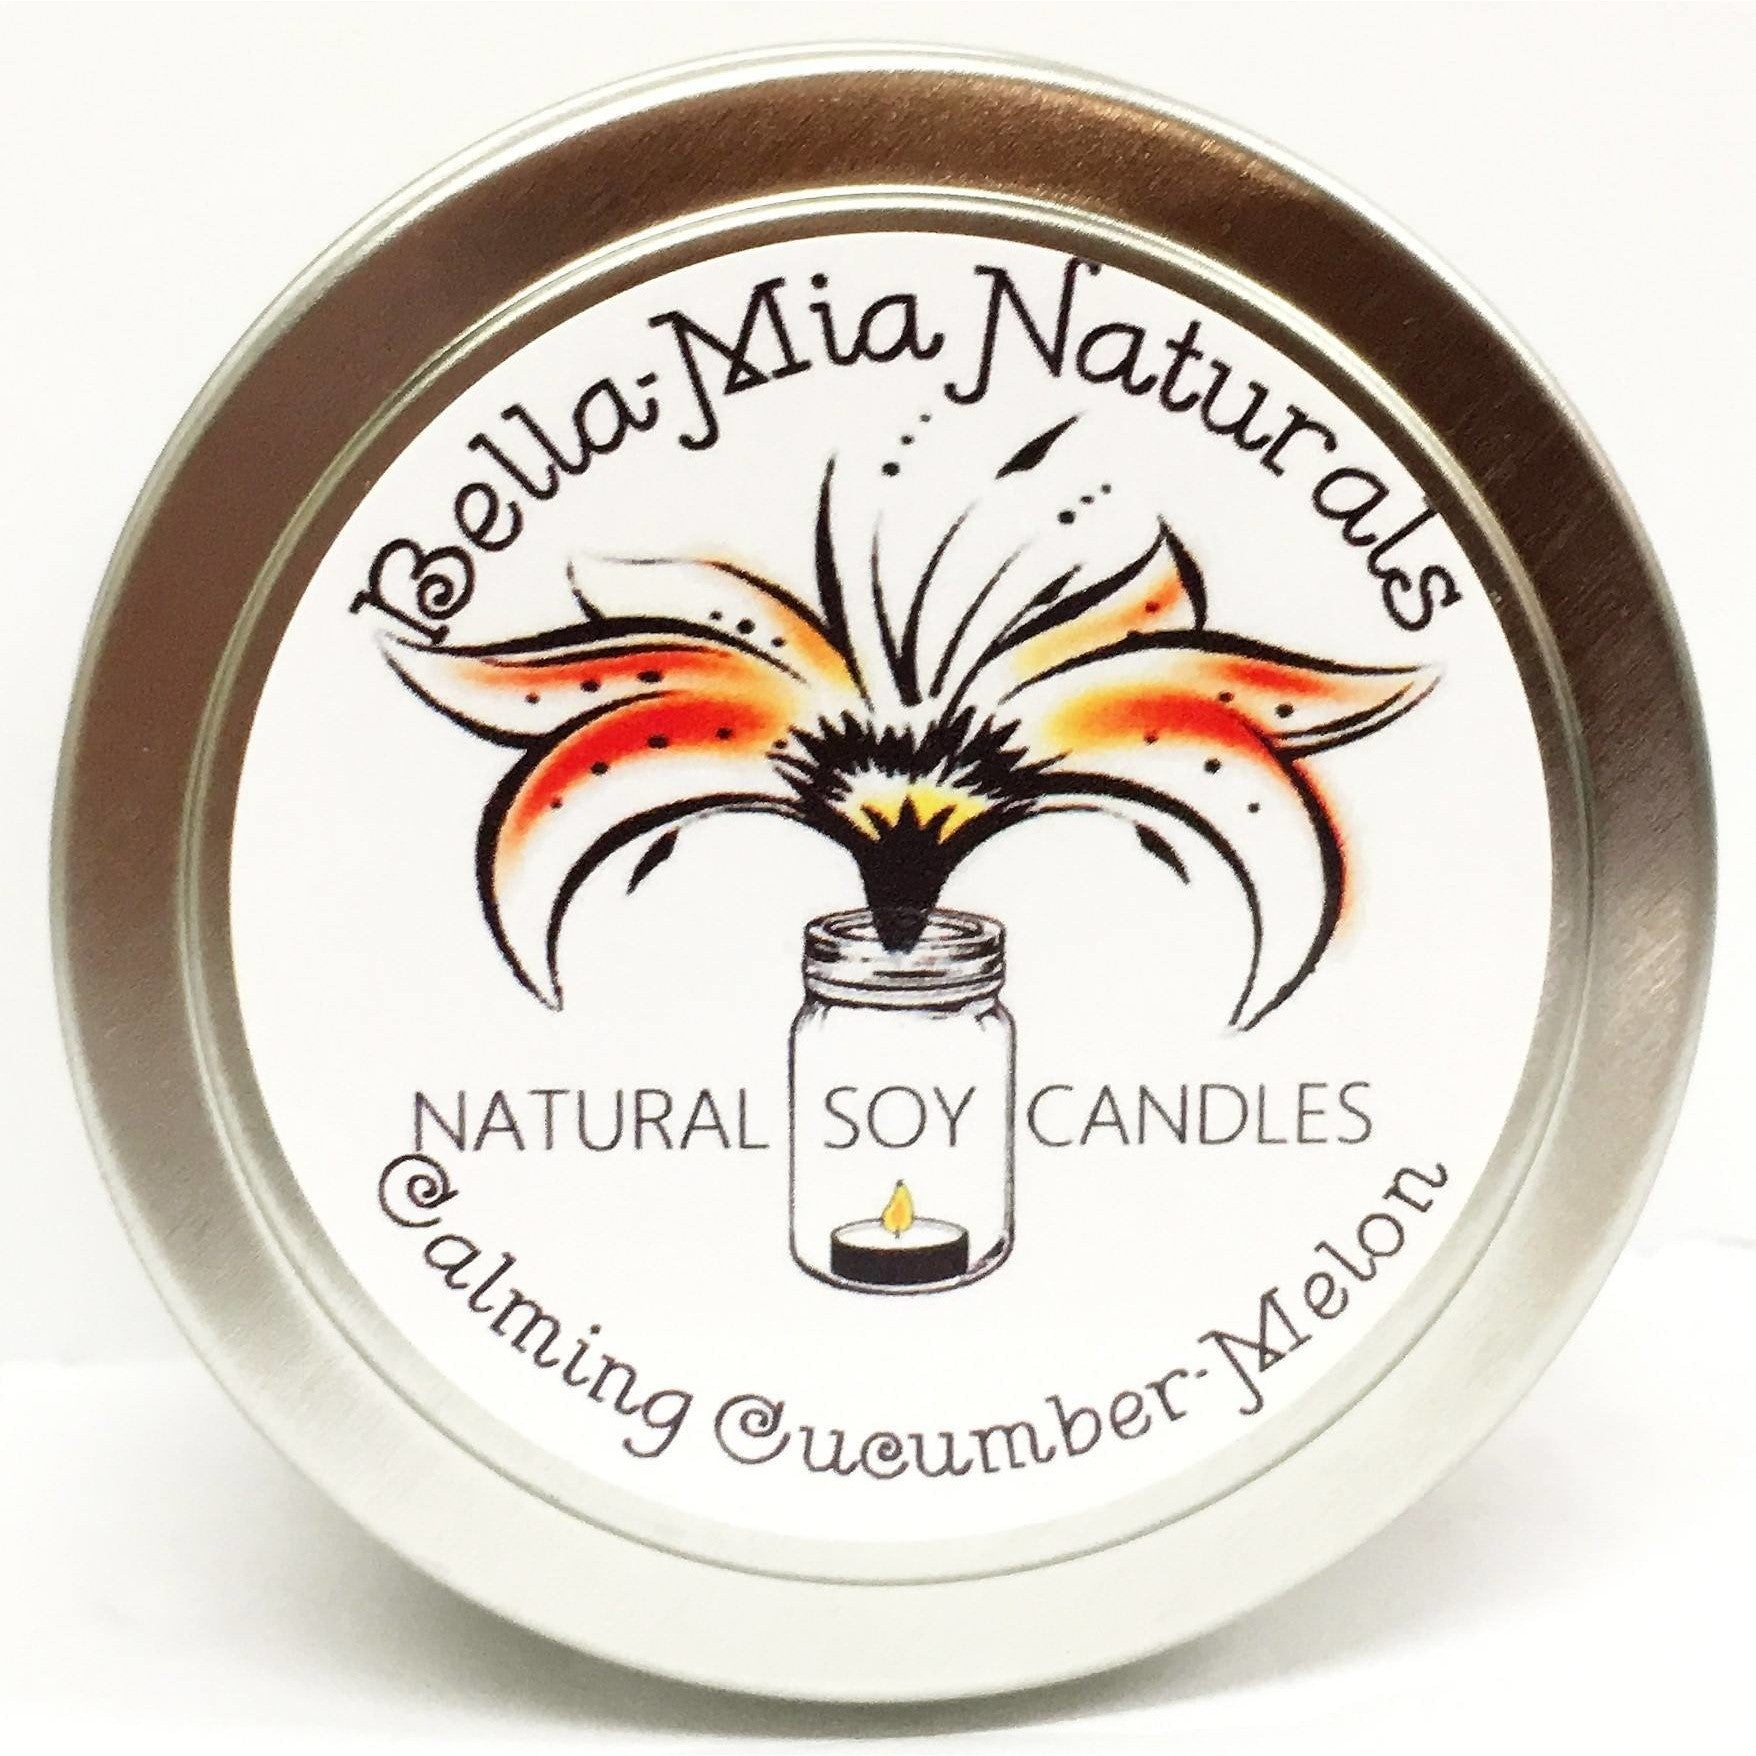 Calming Cucumber-Melon Everyday Natural Soy Candles - Tin - Bella-Mia Naturals All Natural Soy Candles & Lip Balms - 6